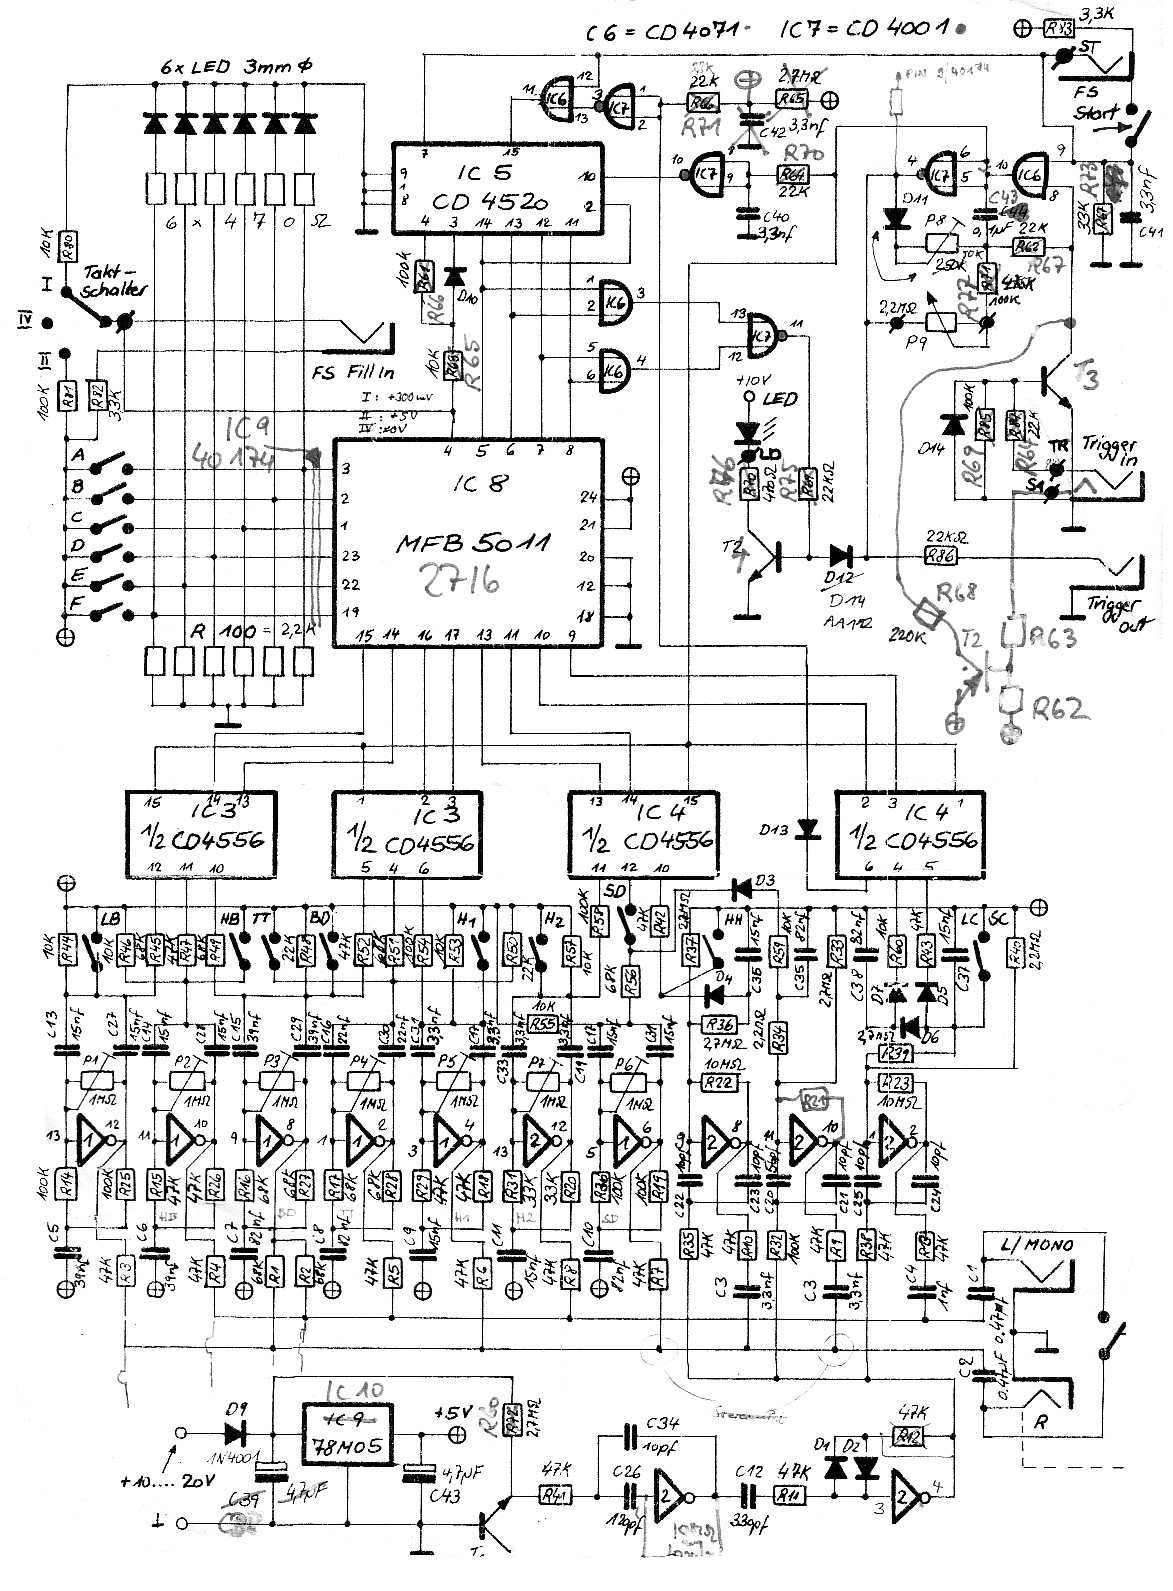 Western Snow Plow Wiring Diagram Hookup as well Schematic Wiring Circuit Boss moreover Western Snow Plow Wiring Diagram Pdf likewise 63394 Western Unimount 99 02 Chevy Gmc Hb3 Hb4 Light Wiring Harness likewise Western Cable Plow 3 Pole Solenoid Wiring Diagrams. on boss snow plow solenoid diagram